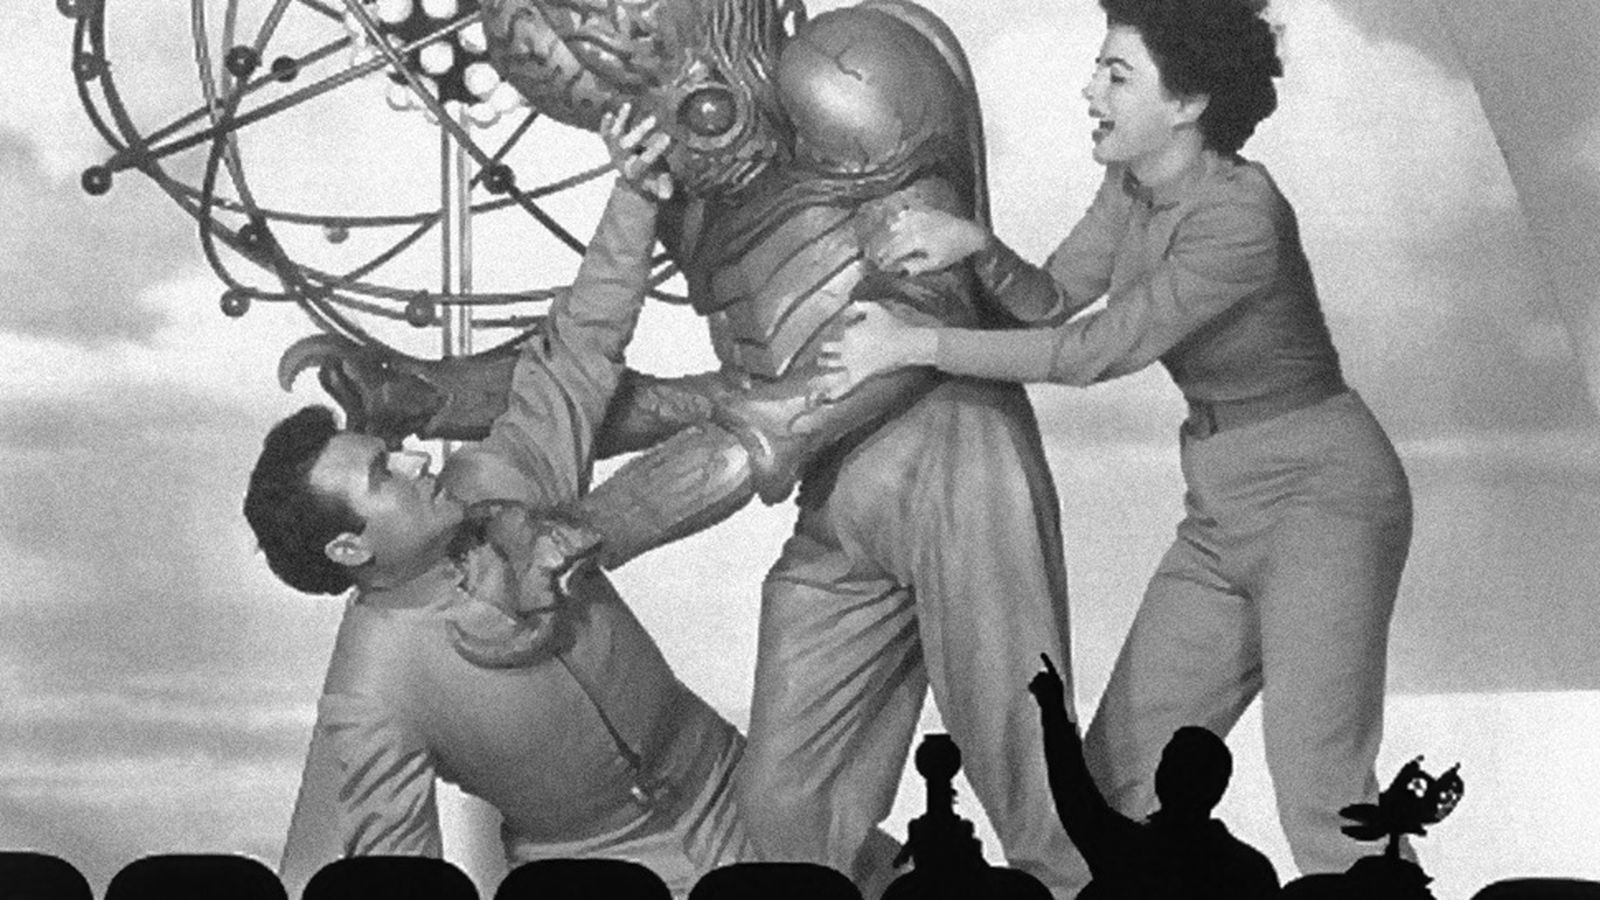 Old-school Mystery Science Theater 3000 is returning for six days with a Twitch marathon - The Verge